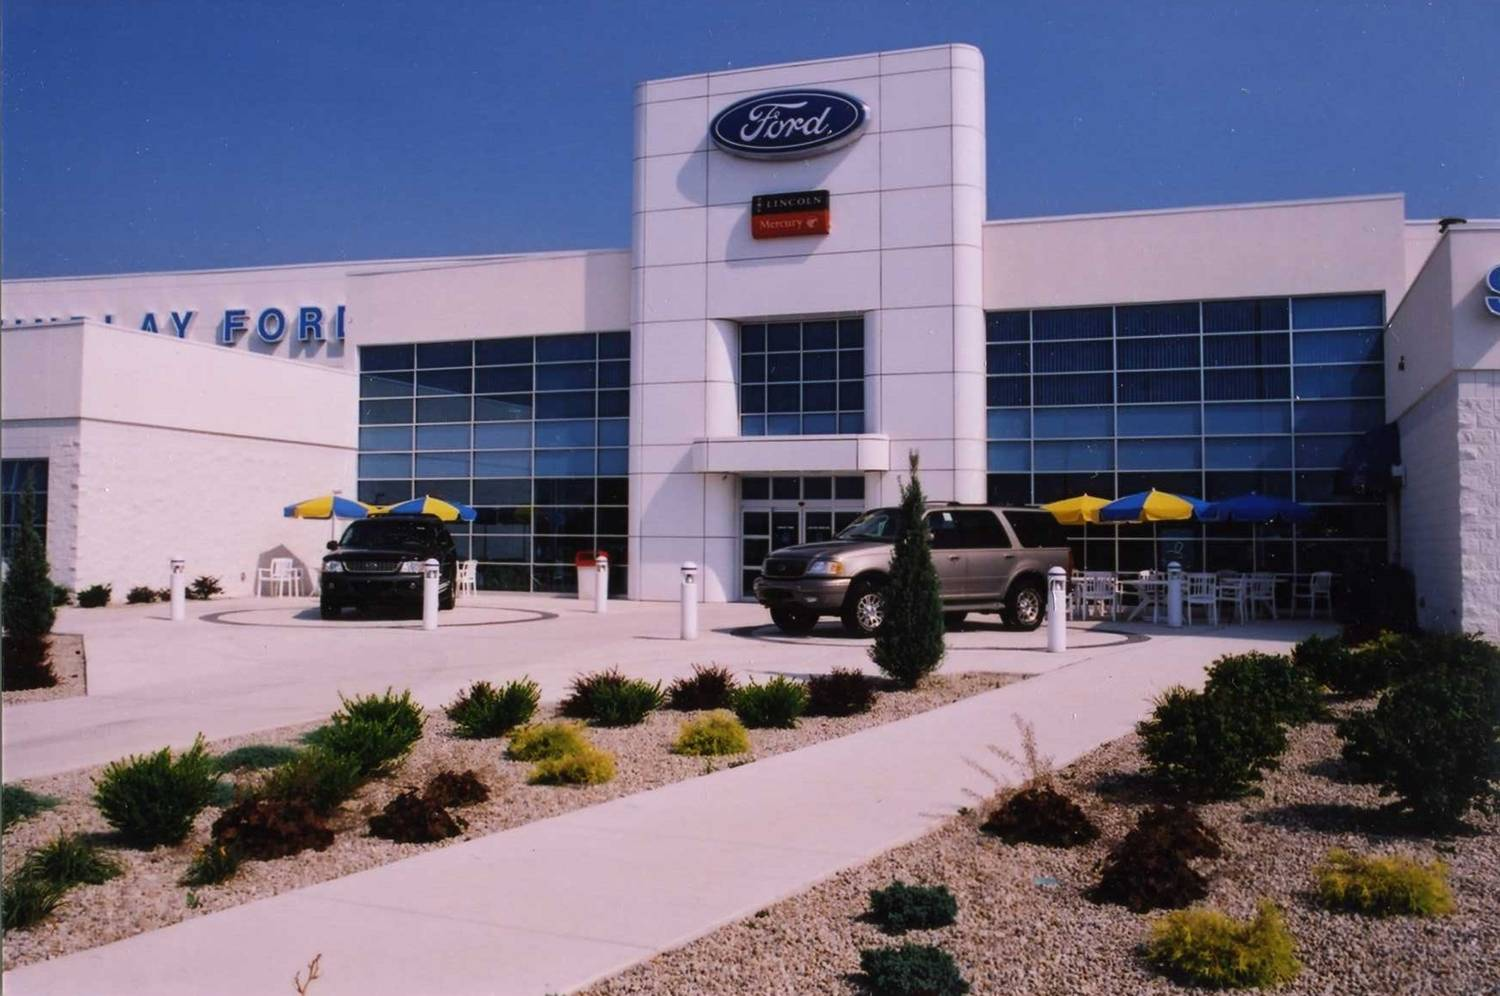 Findlay Ford Dealership (now Reineke Ford Lincoln)